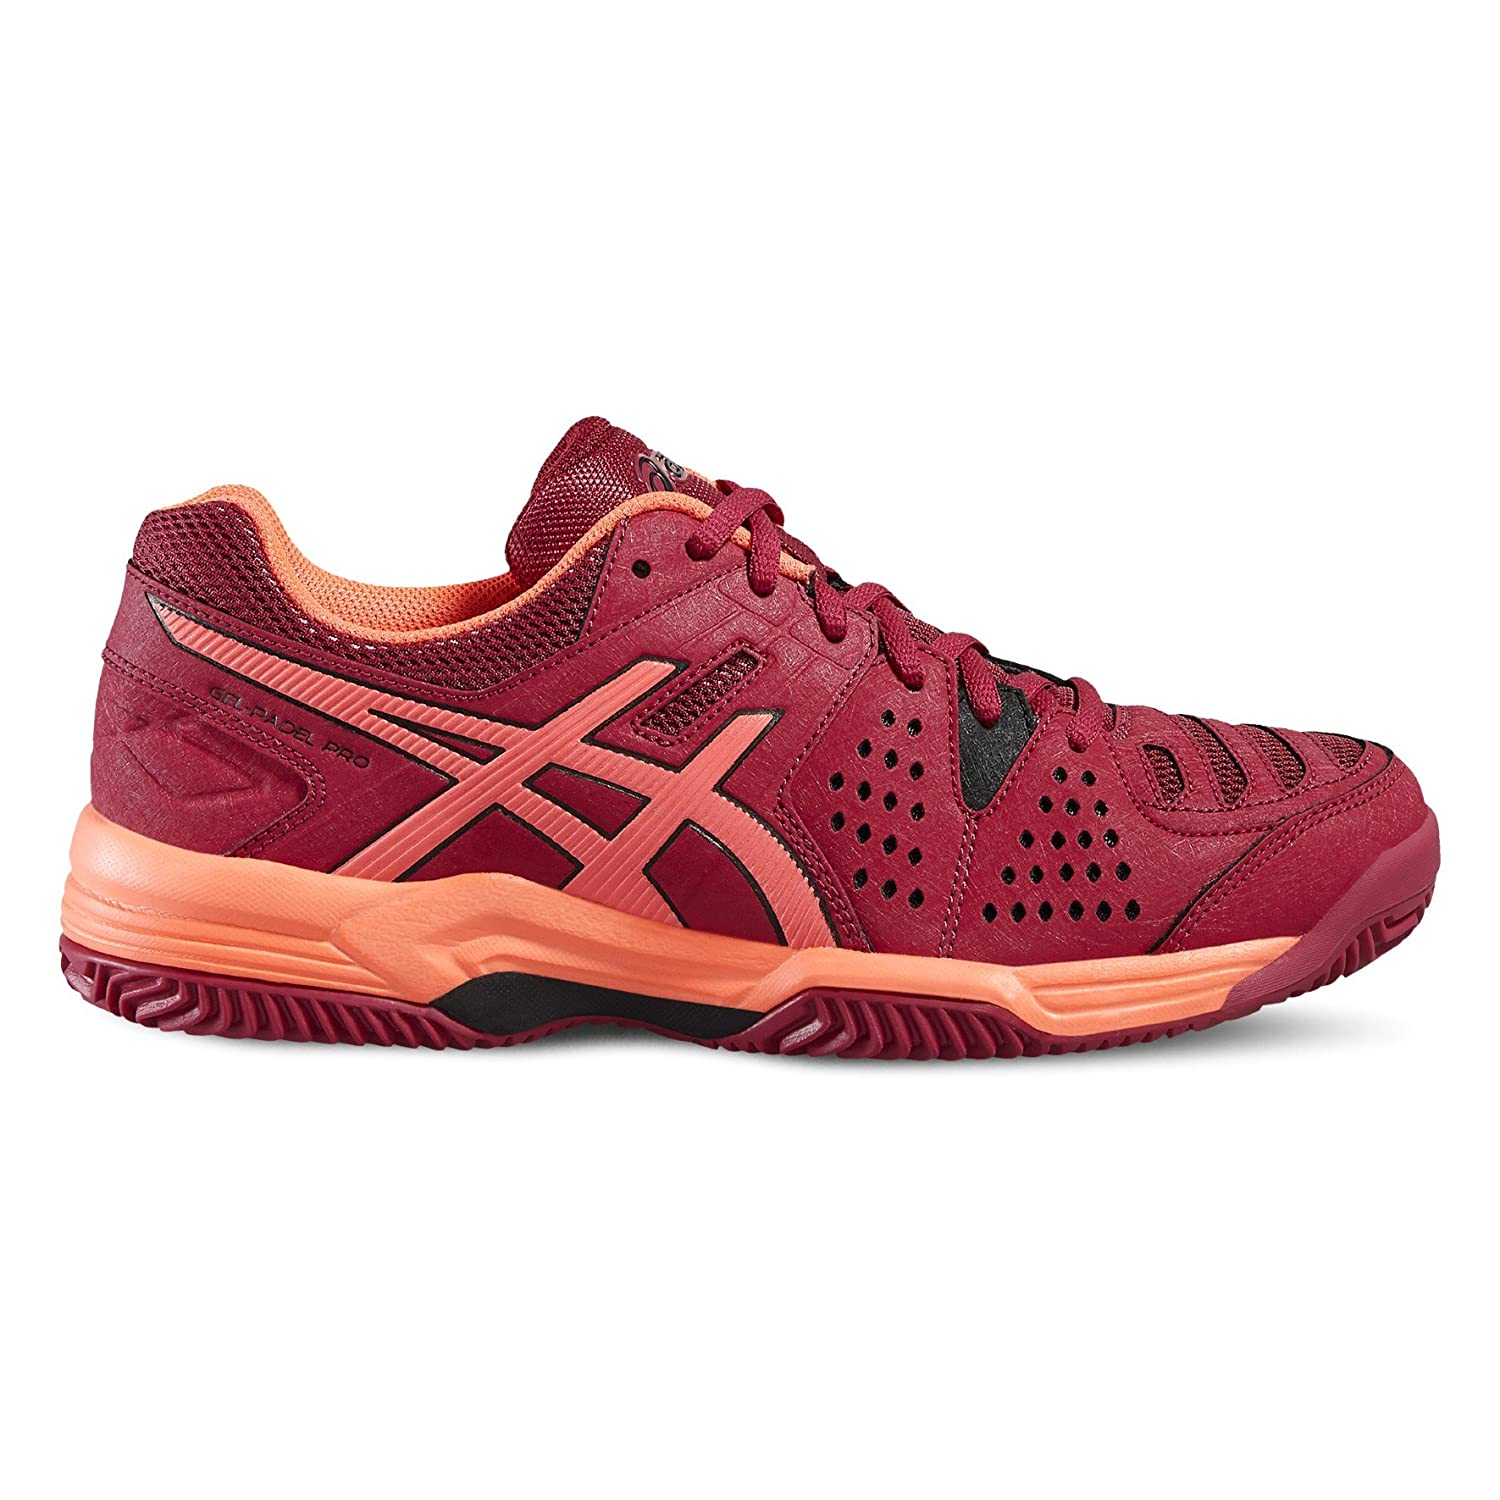 ASICS - Gel Padel Pro 3 SG, Color Rojo, Talla UK-3.5: Amazon.es: Deportes y aire libre